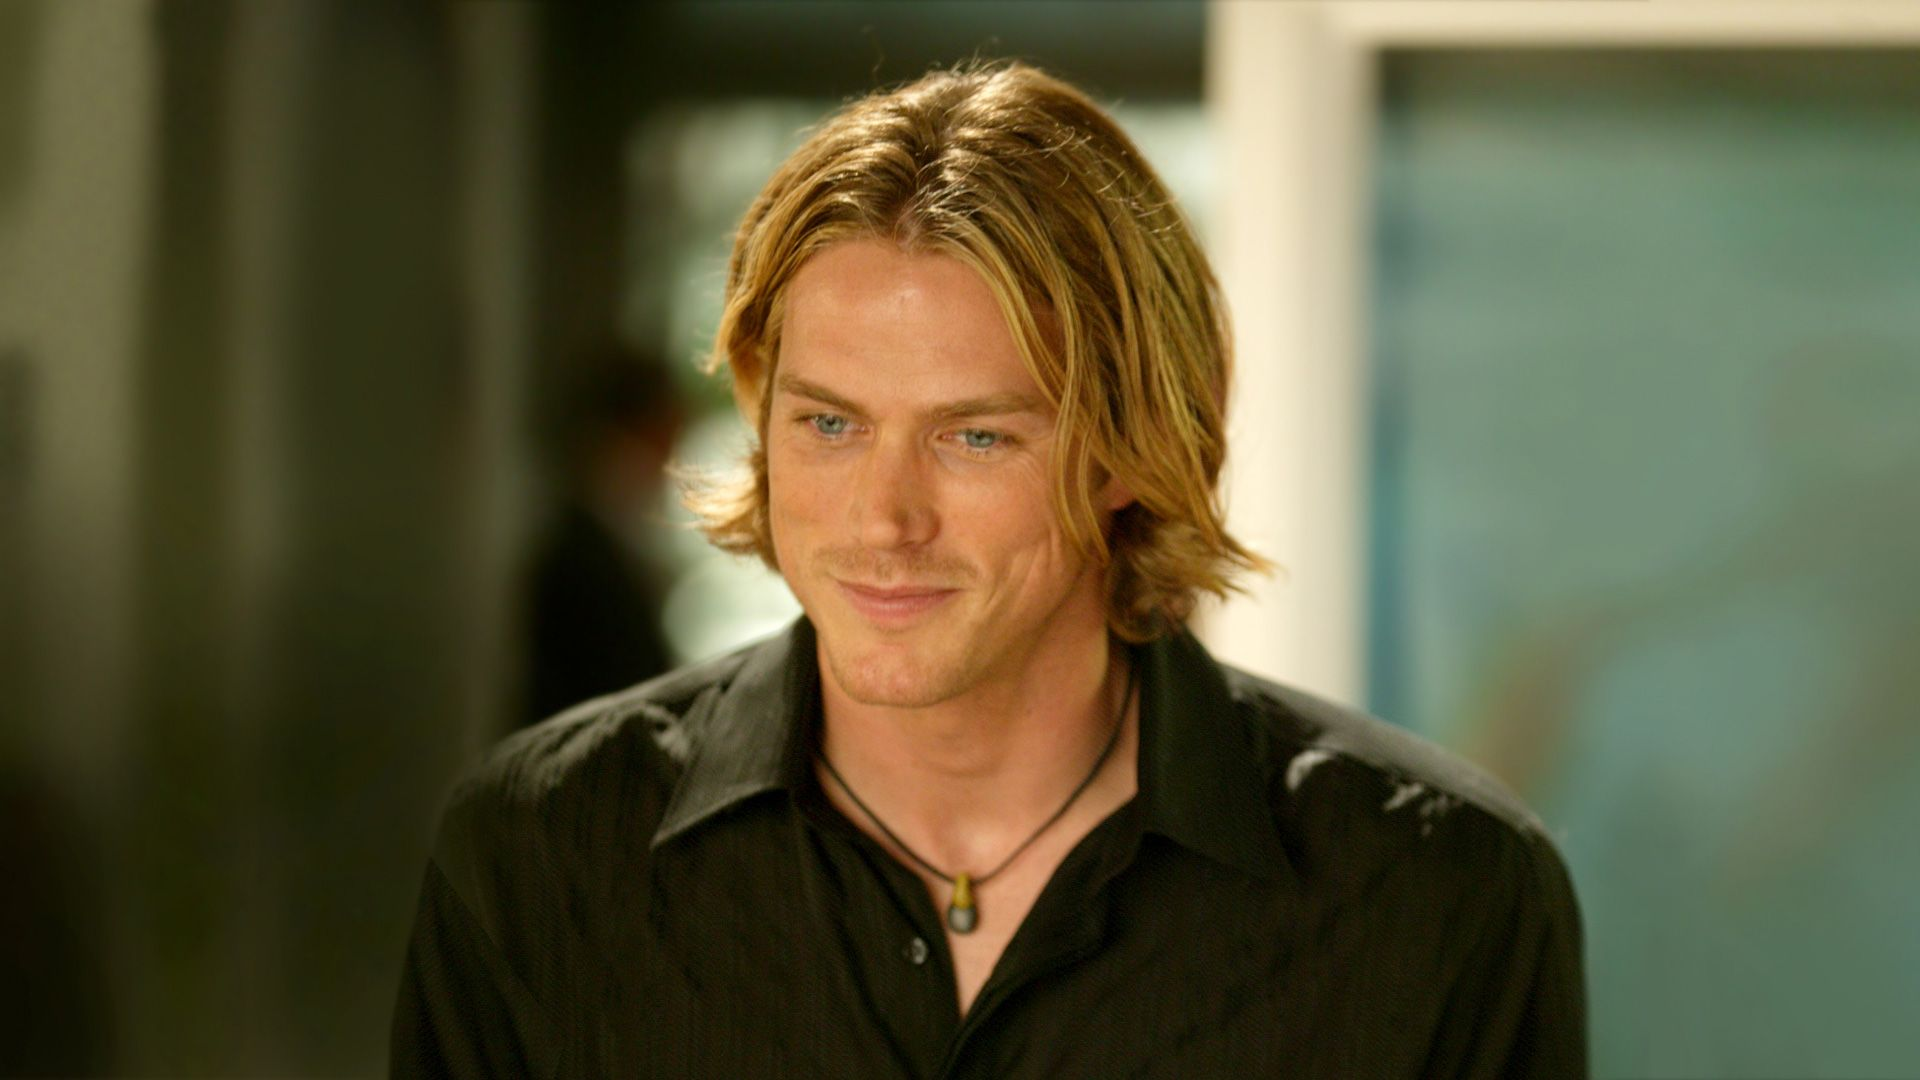 Jason lewis from sex and the city